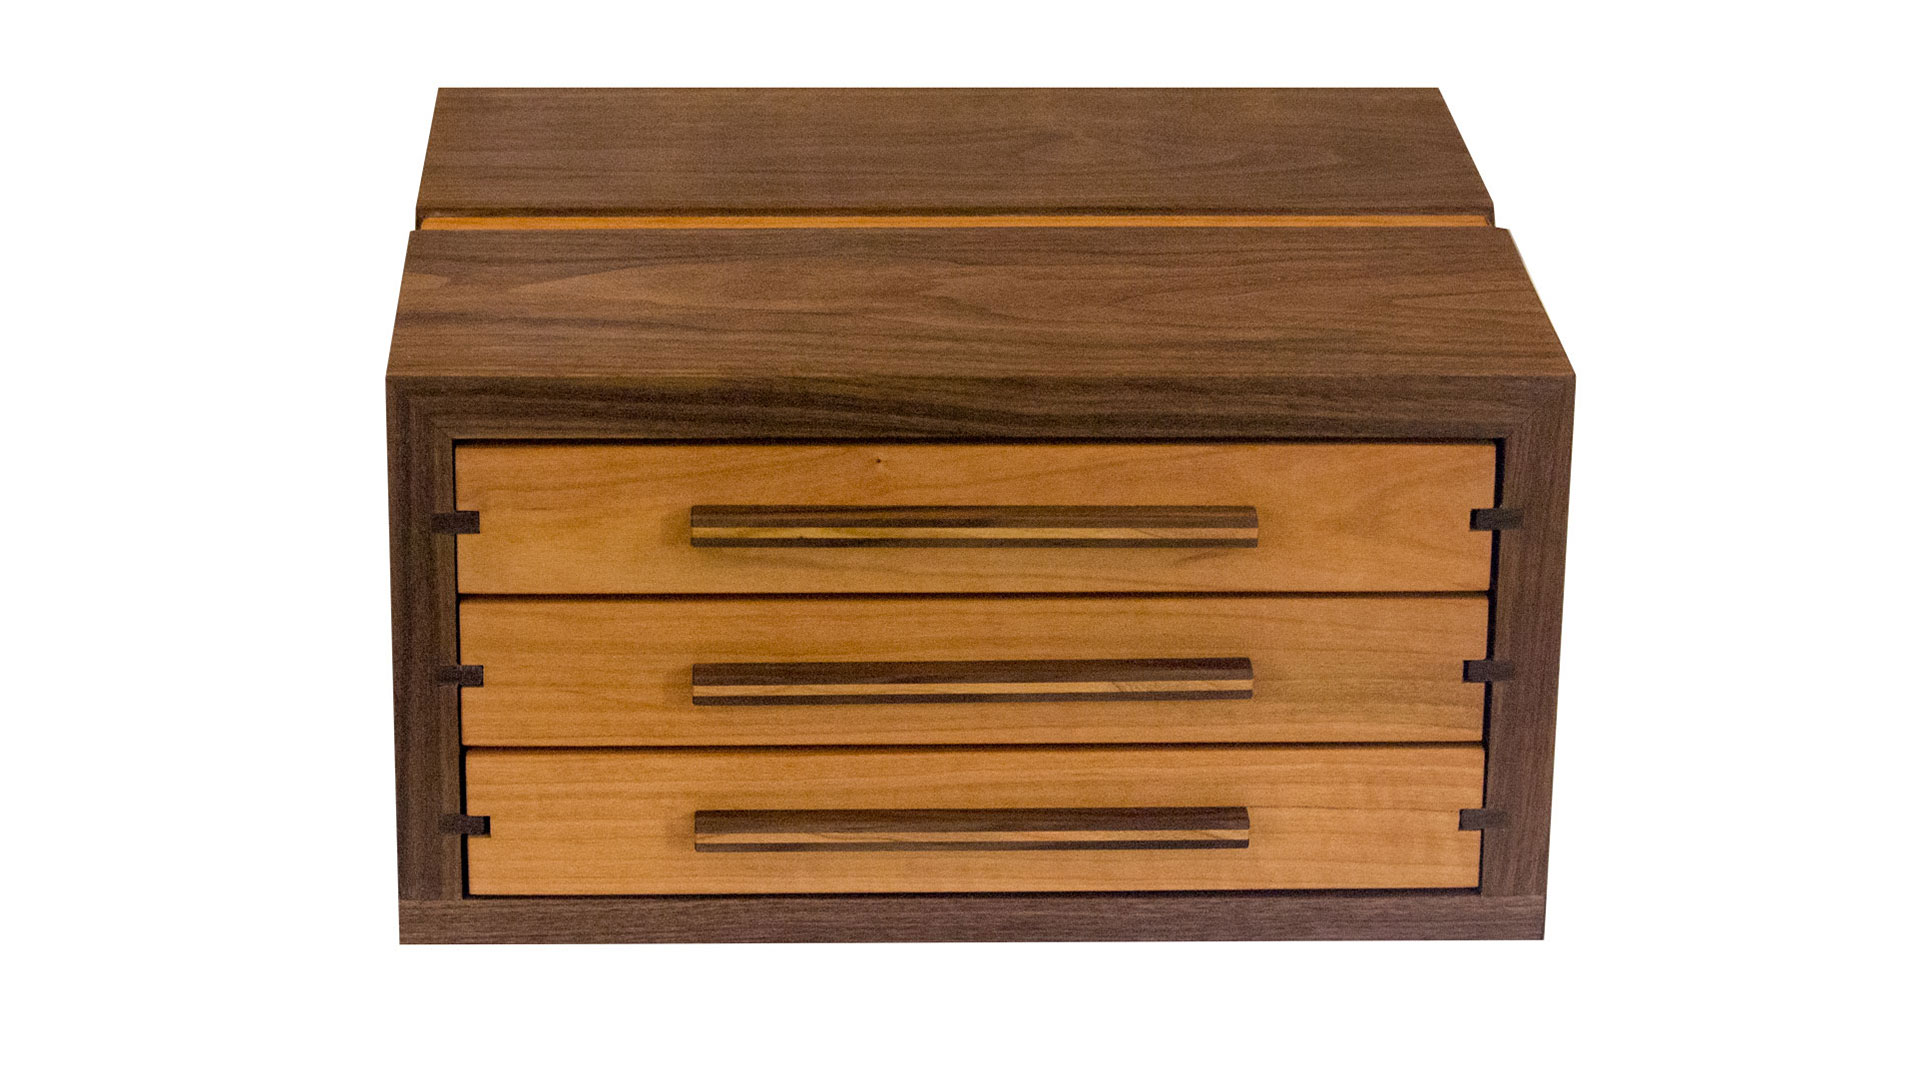 tower jewelry chest - Available with either 3 or 4 velvet-lined drawers. Choose the divider options that best accommodate your needs. 240 square inches (3-drawer), 330 square inches (4-drawer) of storage space.As shown: Walnut and CherryDimensions: 12-1/2W x 11-1/2D x 9H (4-drawer)Price: from $399